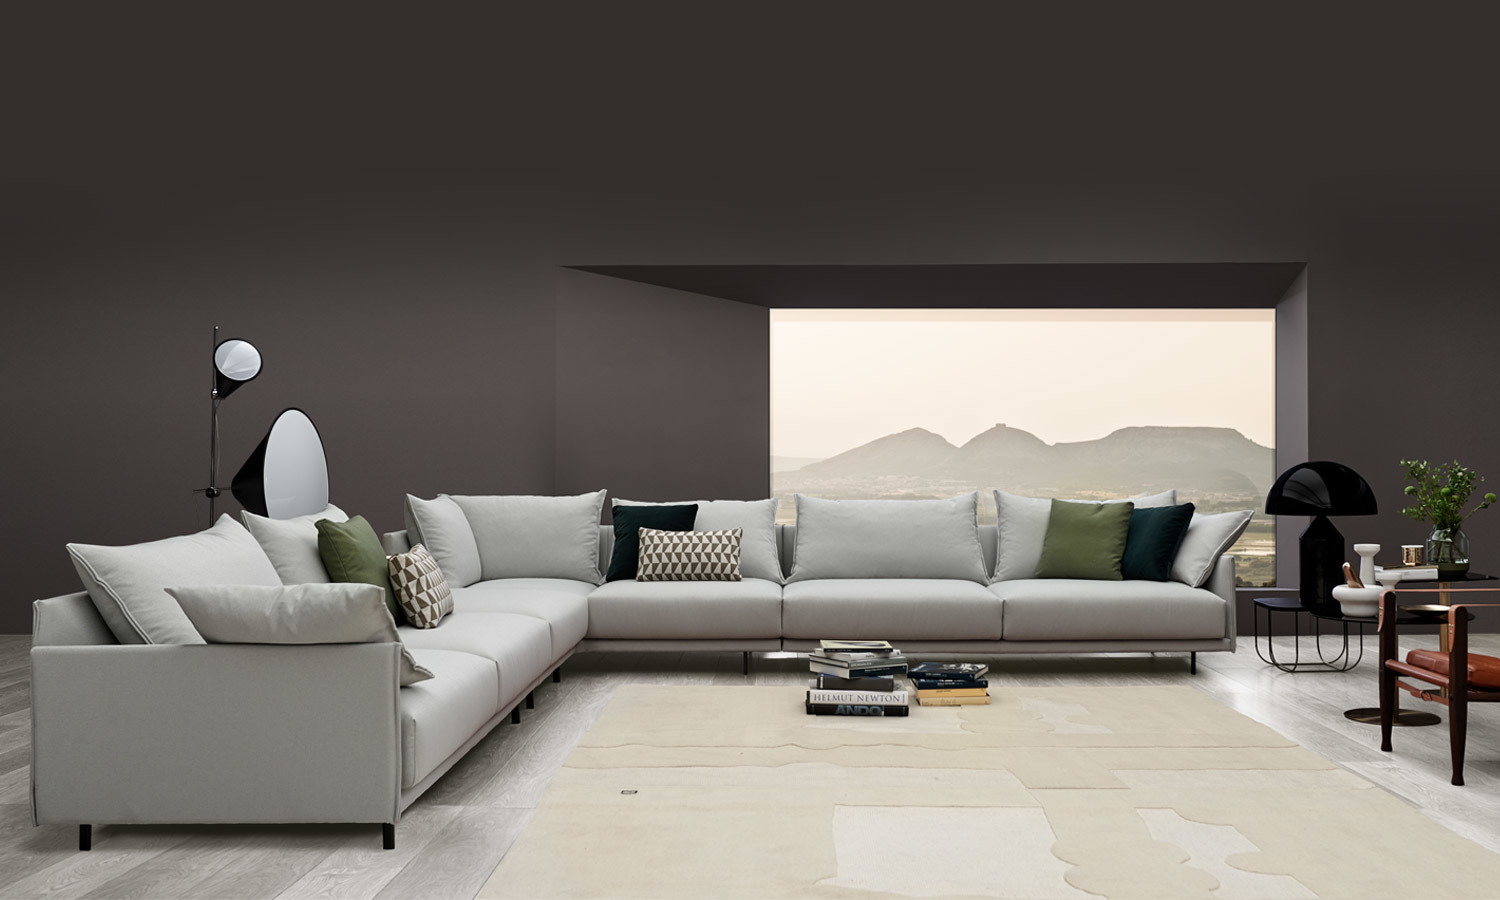 JOQUER Senso Sectional composition